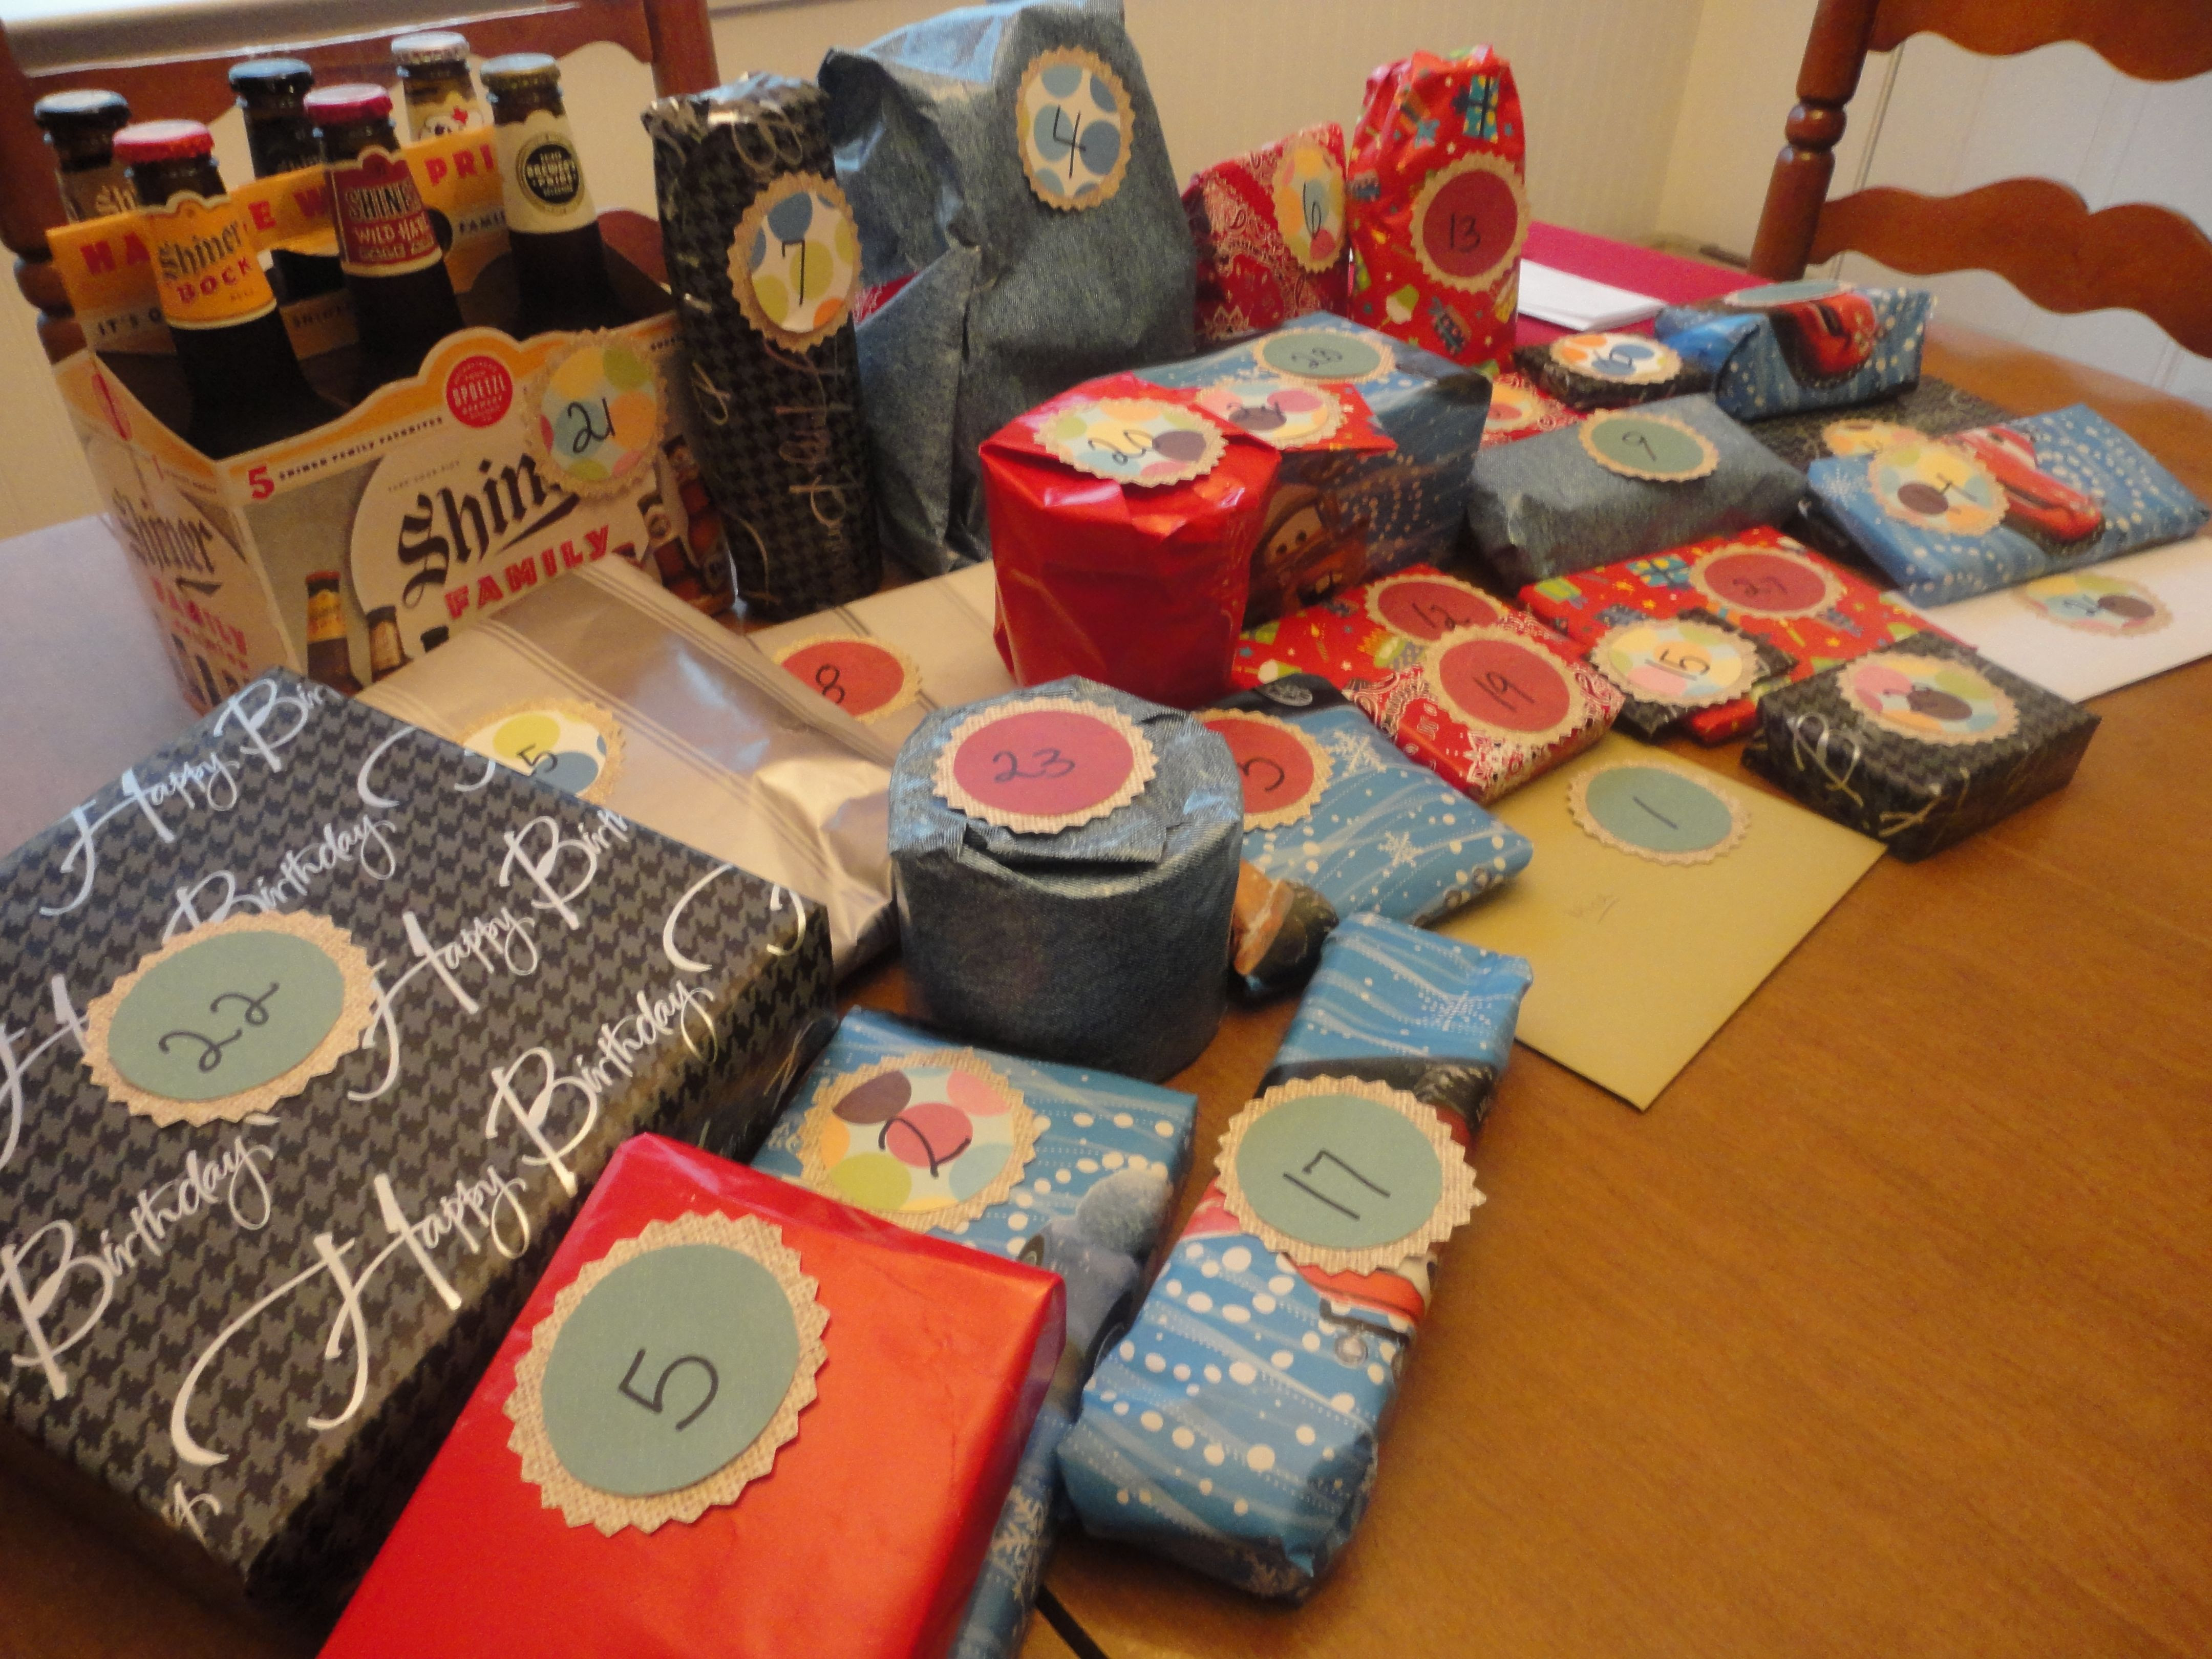 30 Gifts For 30Th Birthday For Her  30 ts for 30th birthday … An Un mon Love